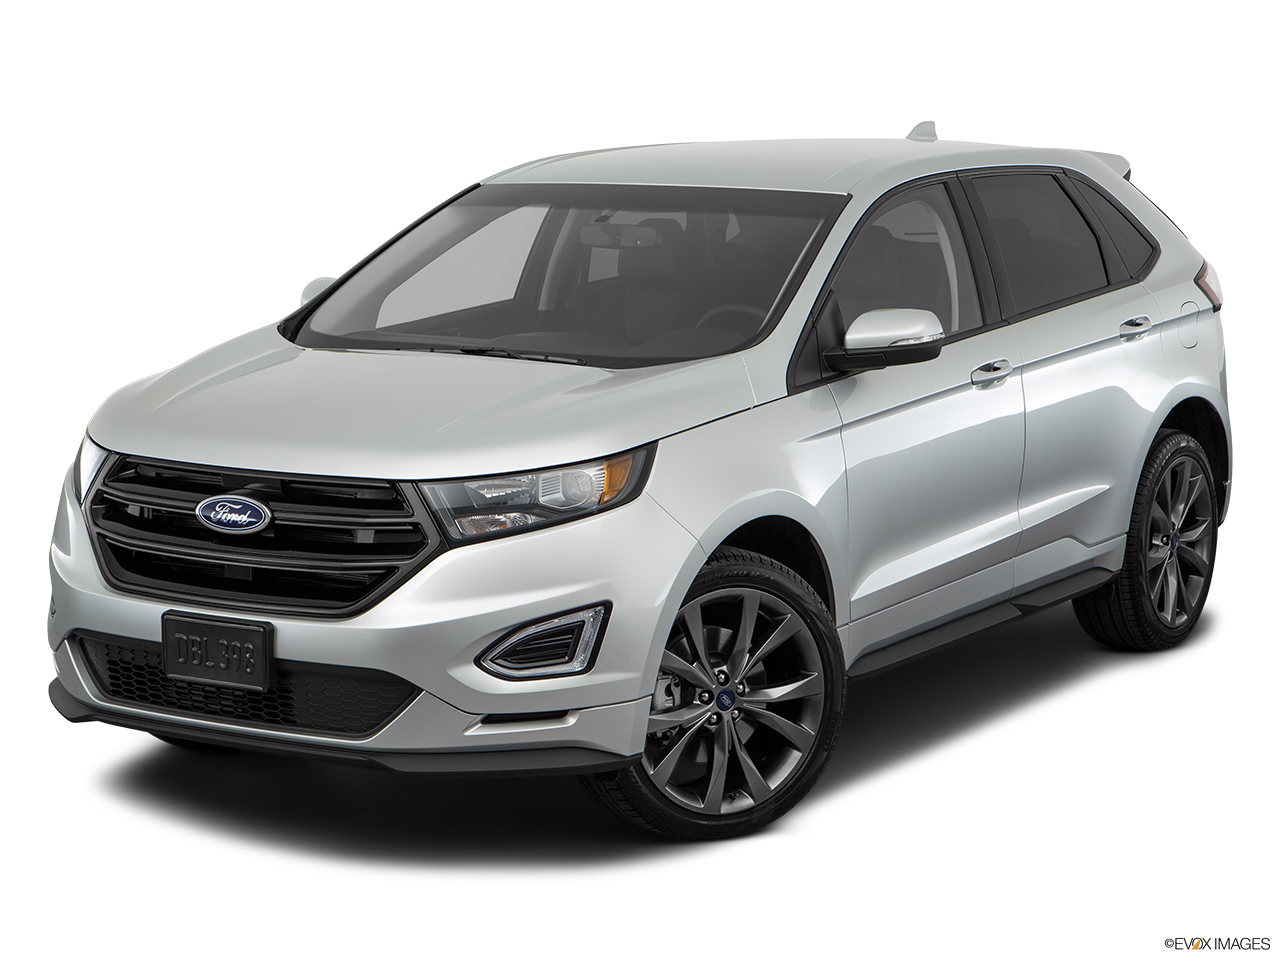 Ford Edge L Sport Qatar Front Angle View